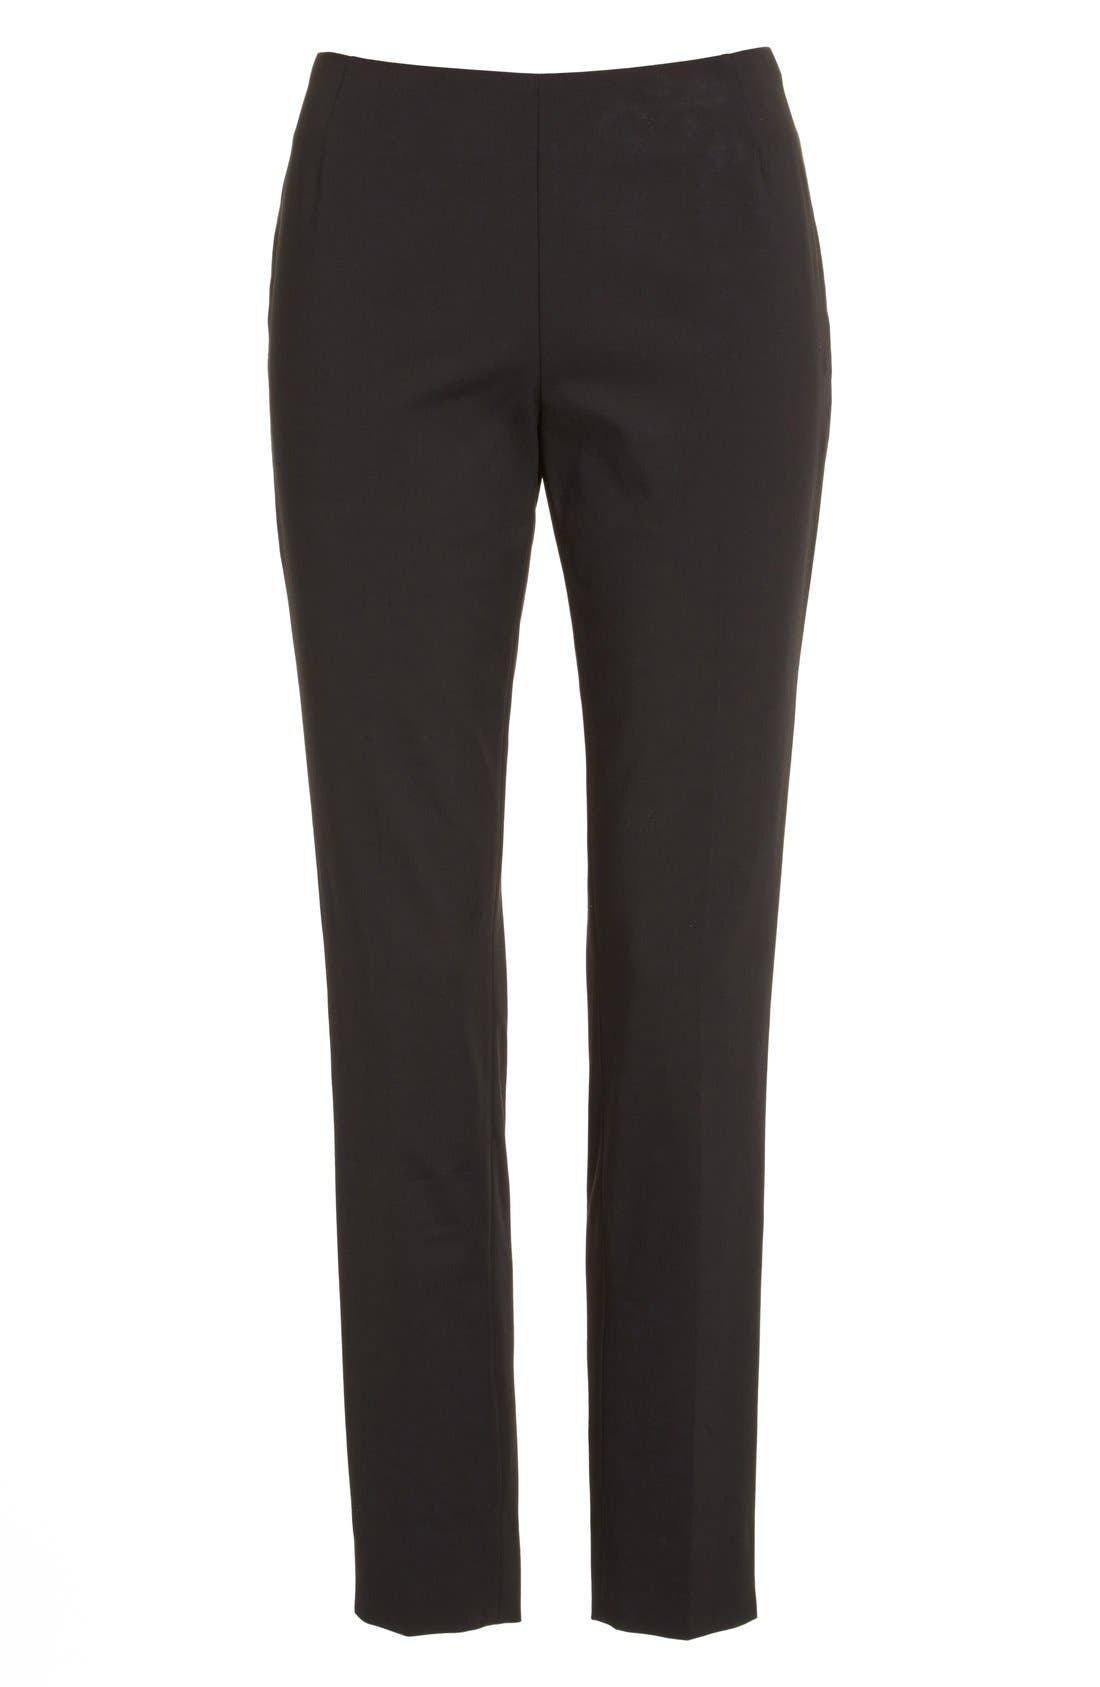 Alternate Image 4  - Lafayette 148 New York 'Stanton' Slim Leg Ankle Pants (Regular & Petite)